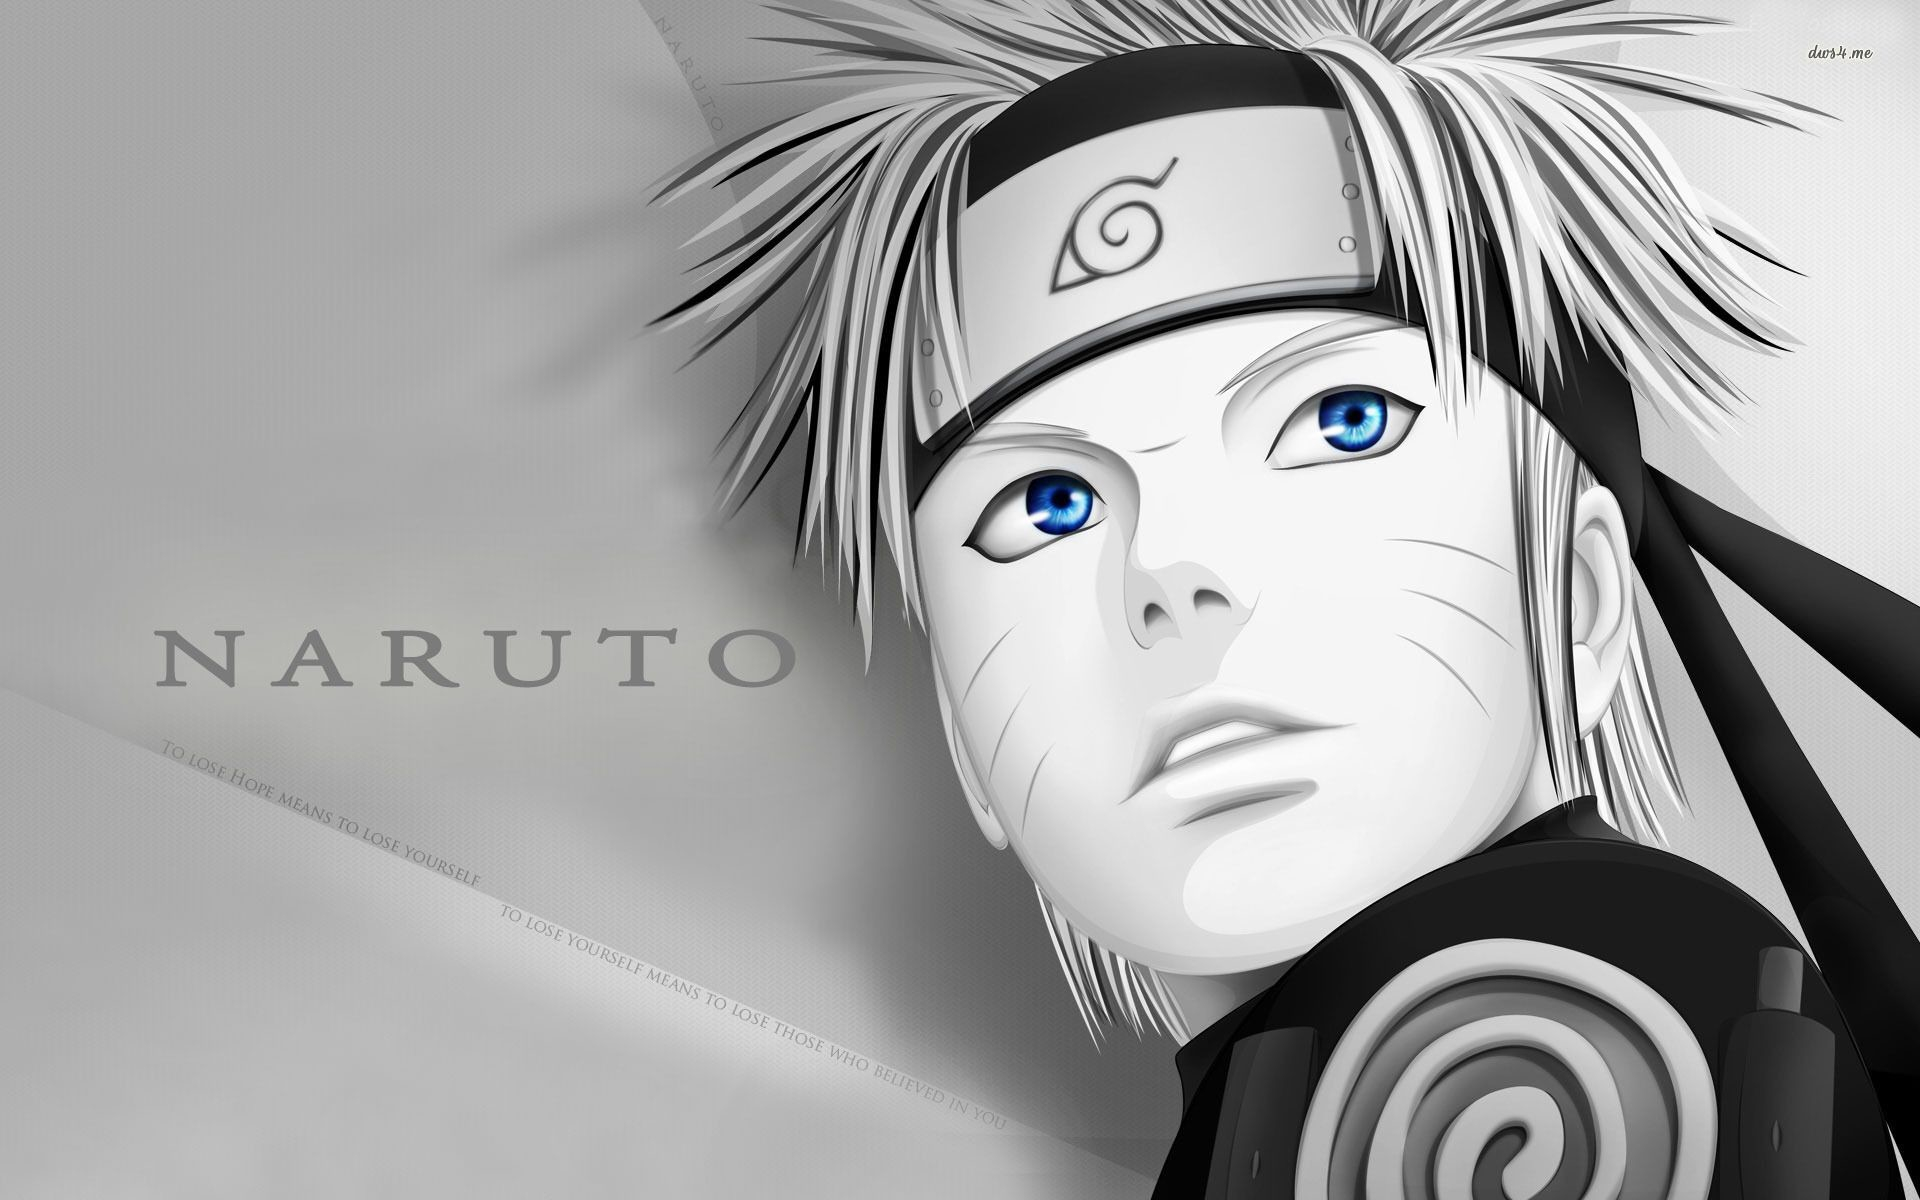 Naruto Shippuden Wallpapers Hokage 71 background pictures